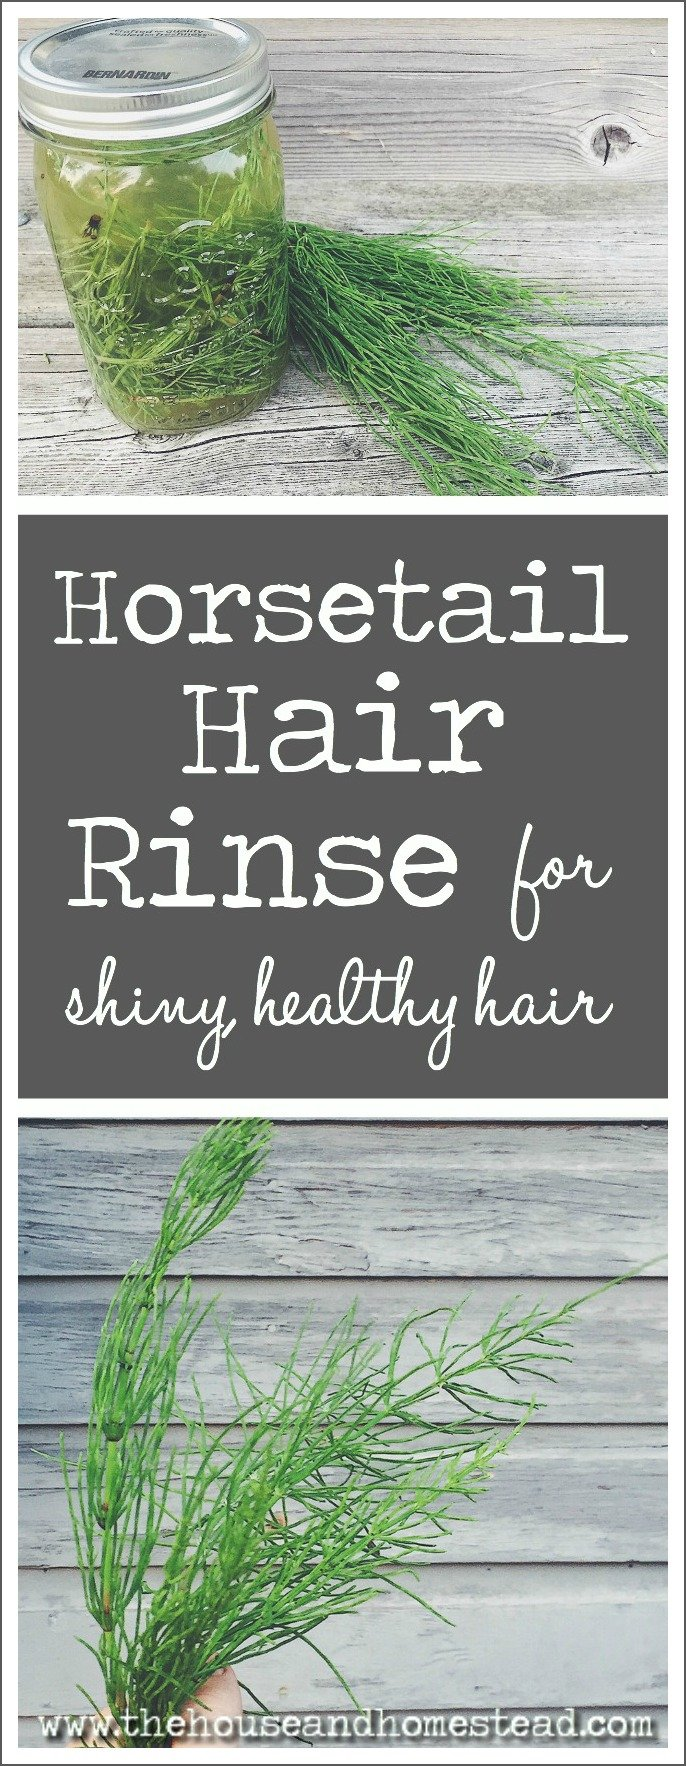 Horsetail is an invasive weed in the garden, but it can be put to good use! Packed with silica, horsetail can help you achieve strong, shiny, healthy hair. Make this super simple horsetail hair rinse with all-natural ingredients to start reaping the benefits of horsetail today!